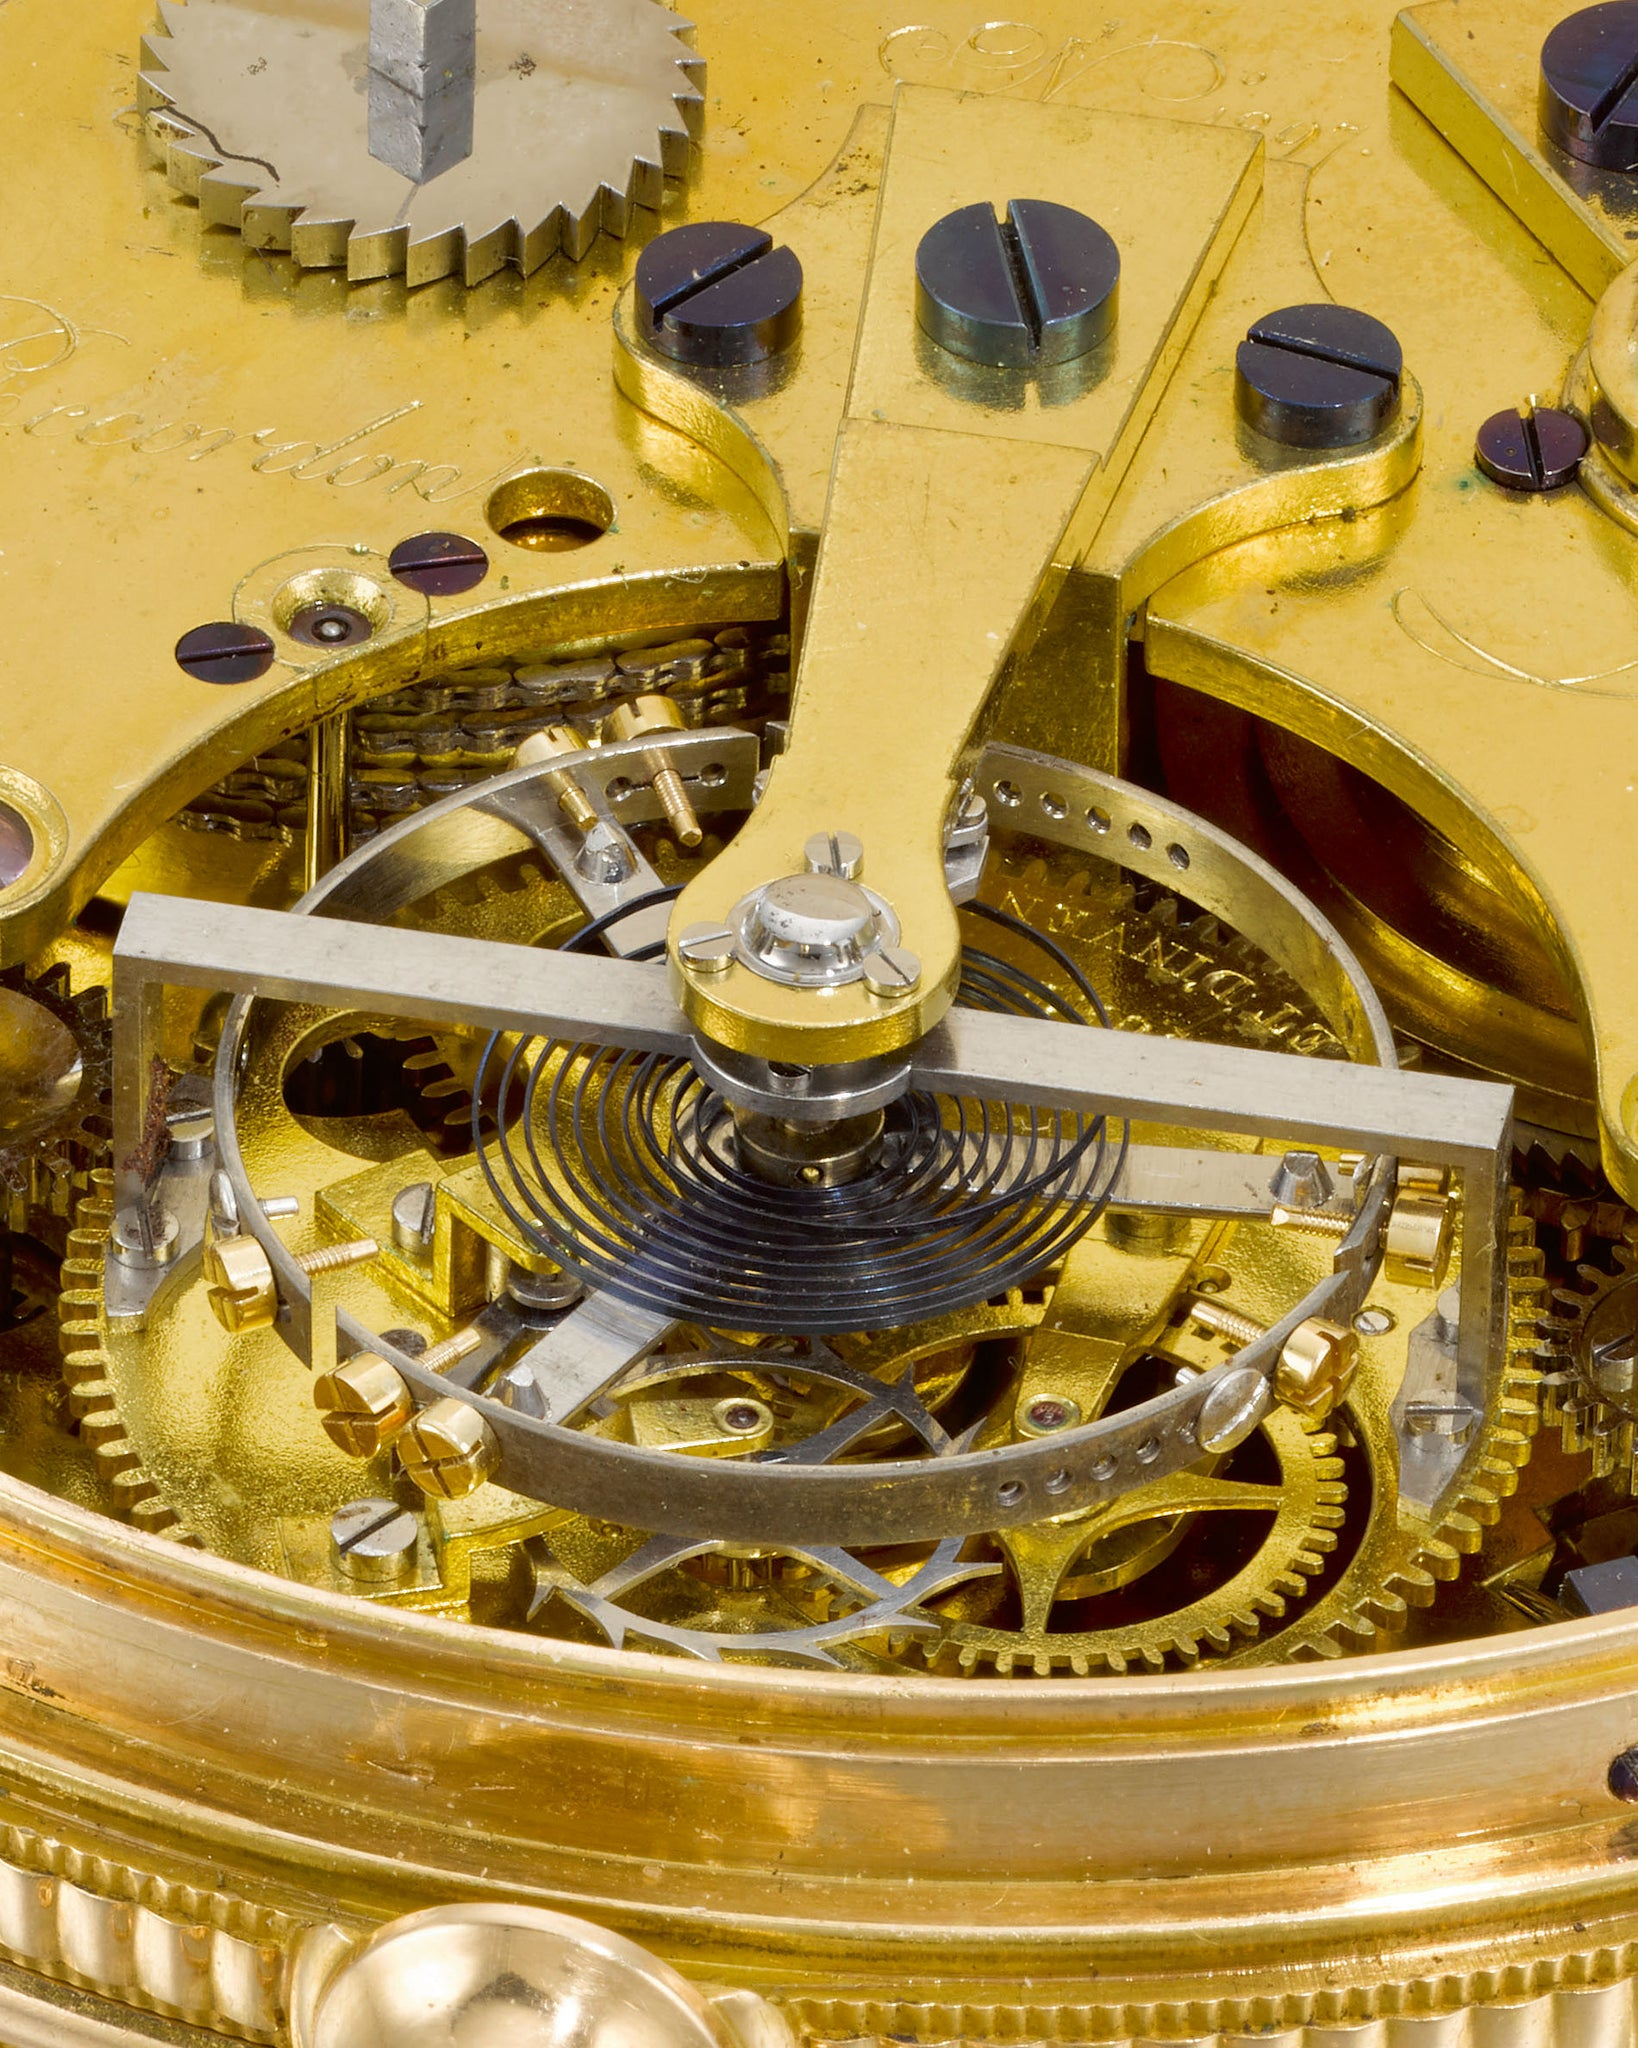 Macro shot of the tourbillon cage of King George III's watch made by Breguet